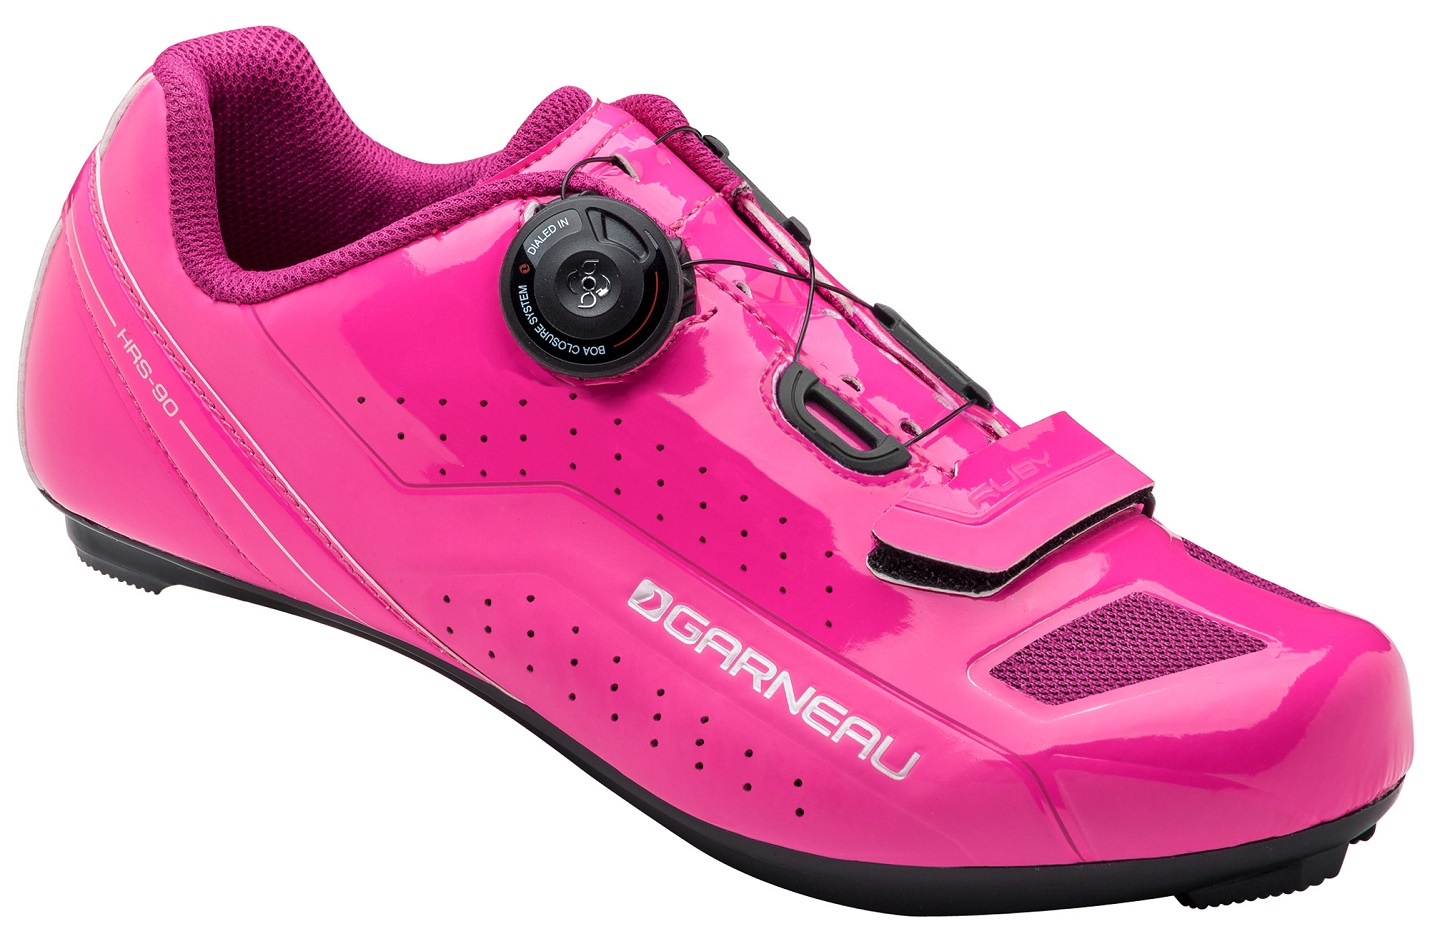 Lastest Image Of Louis Garneau Women39s Jade Cycling Shoes Drizzle 40